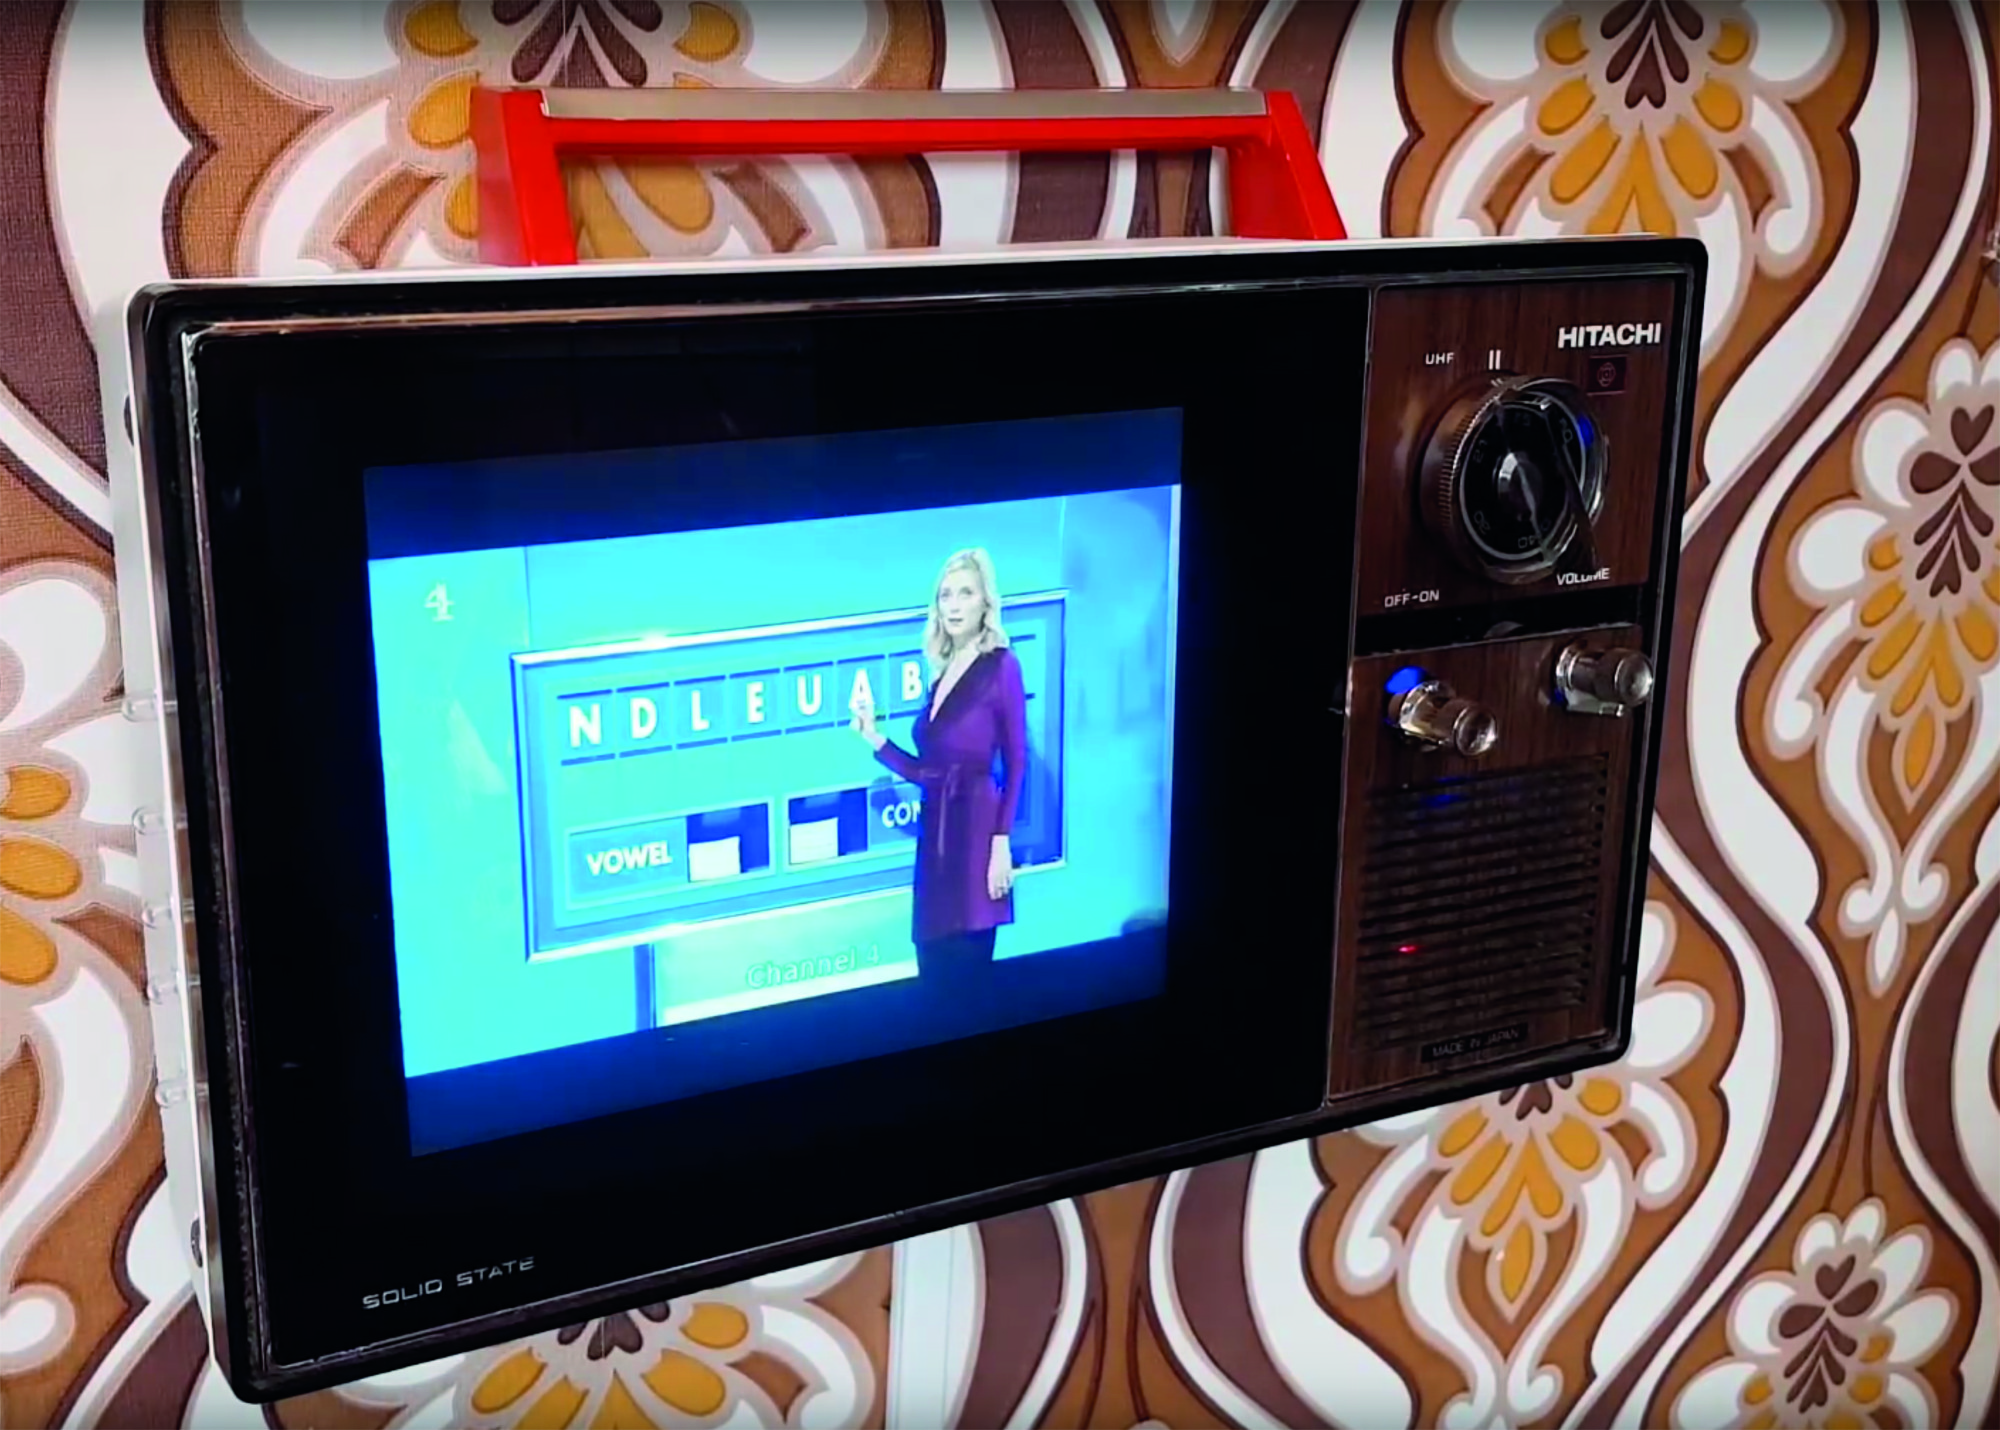 Vintage television with Raspberry Pi TV HAT - The MagPi